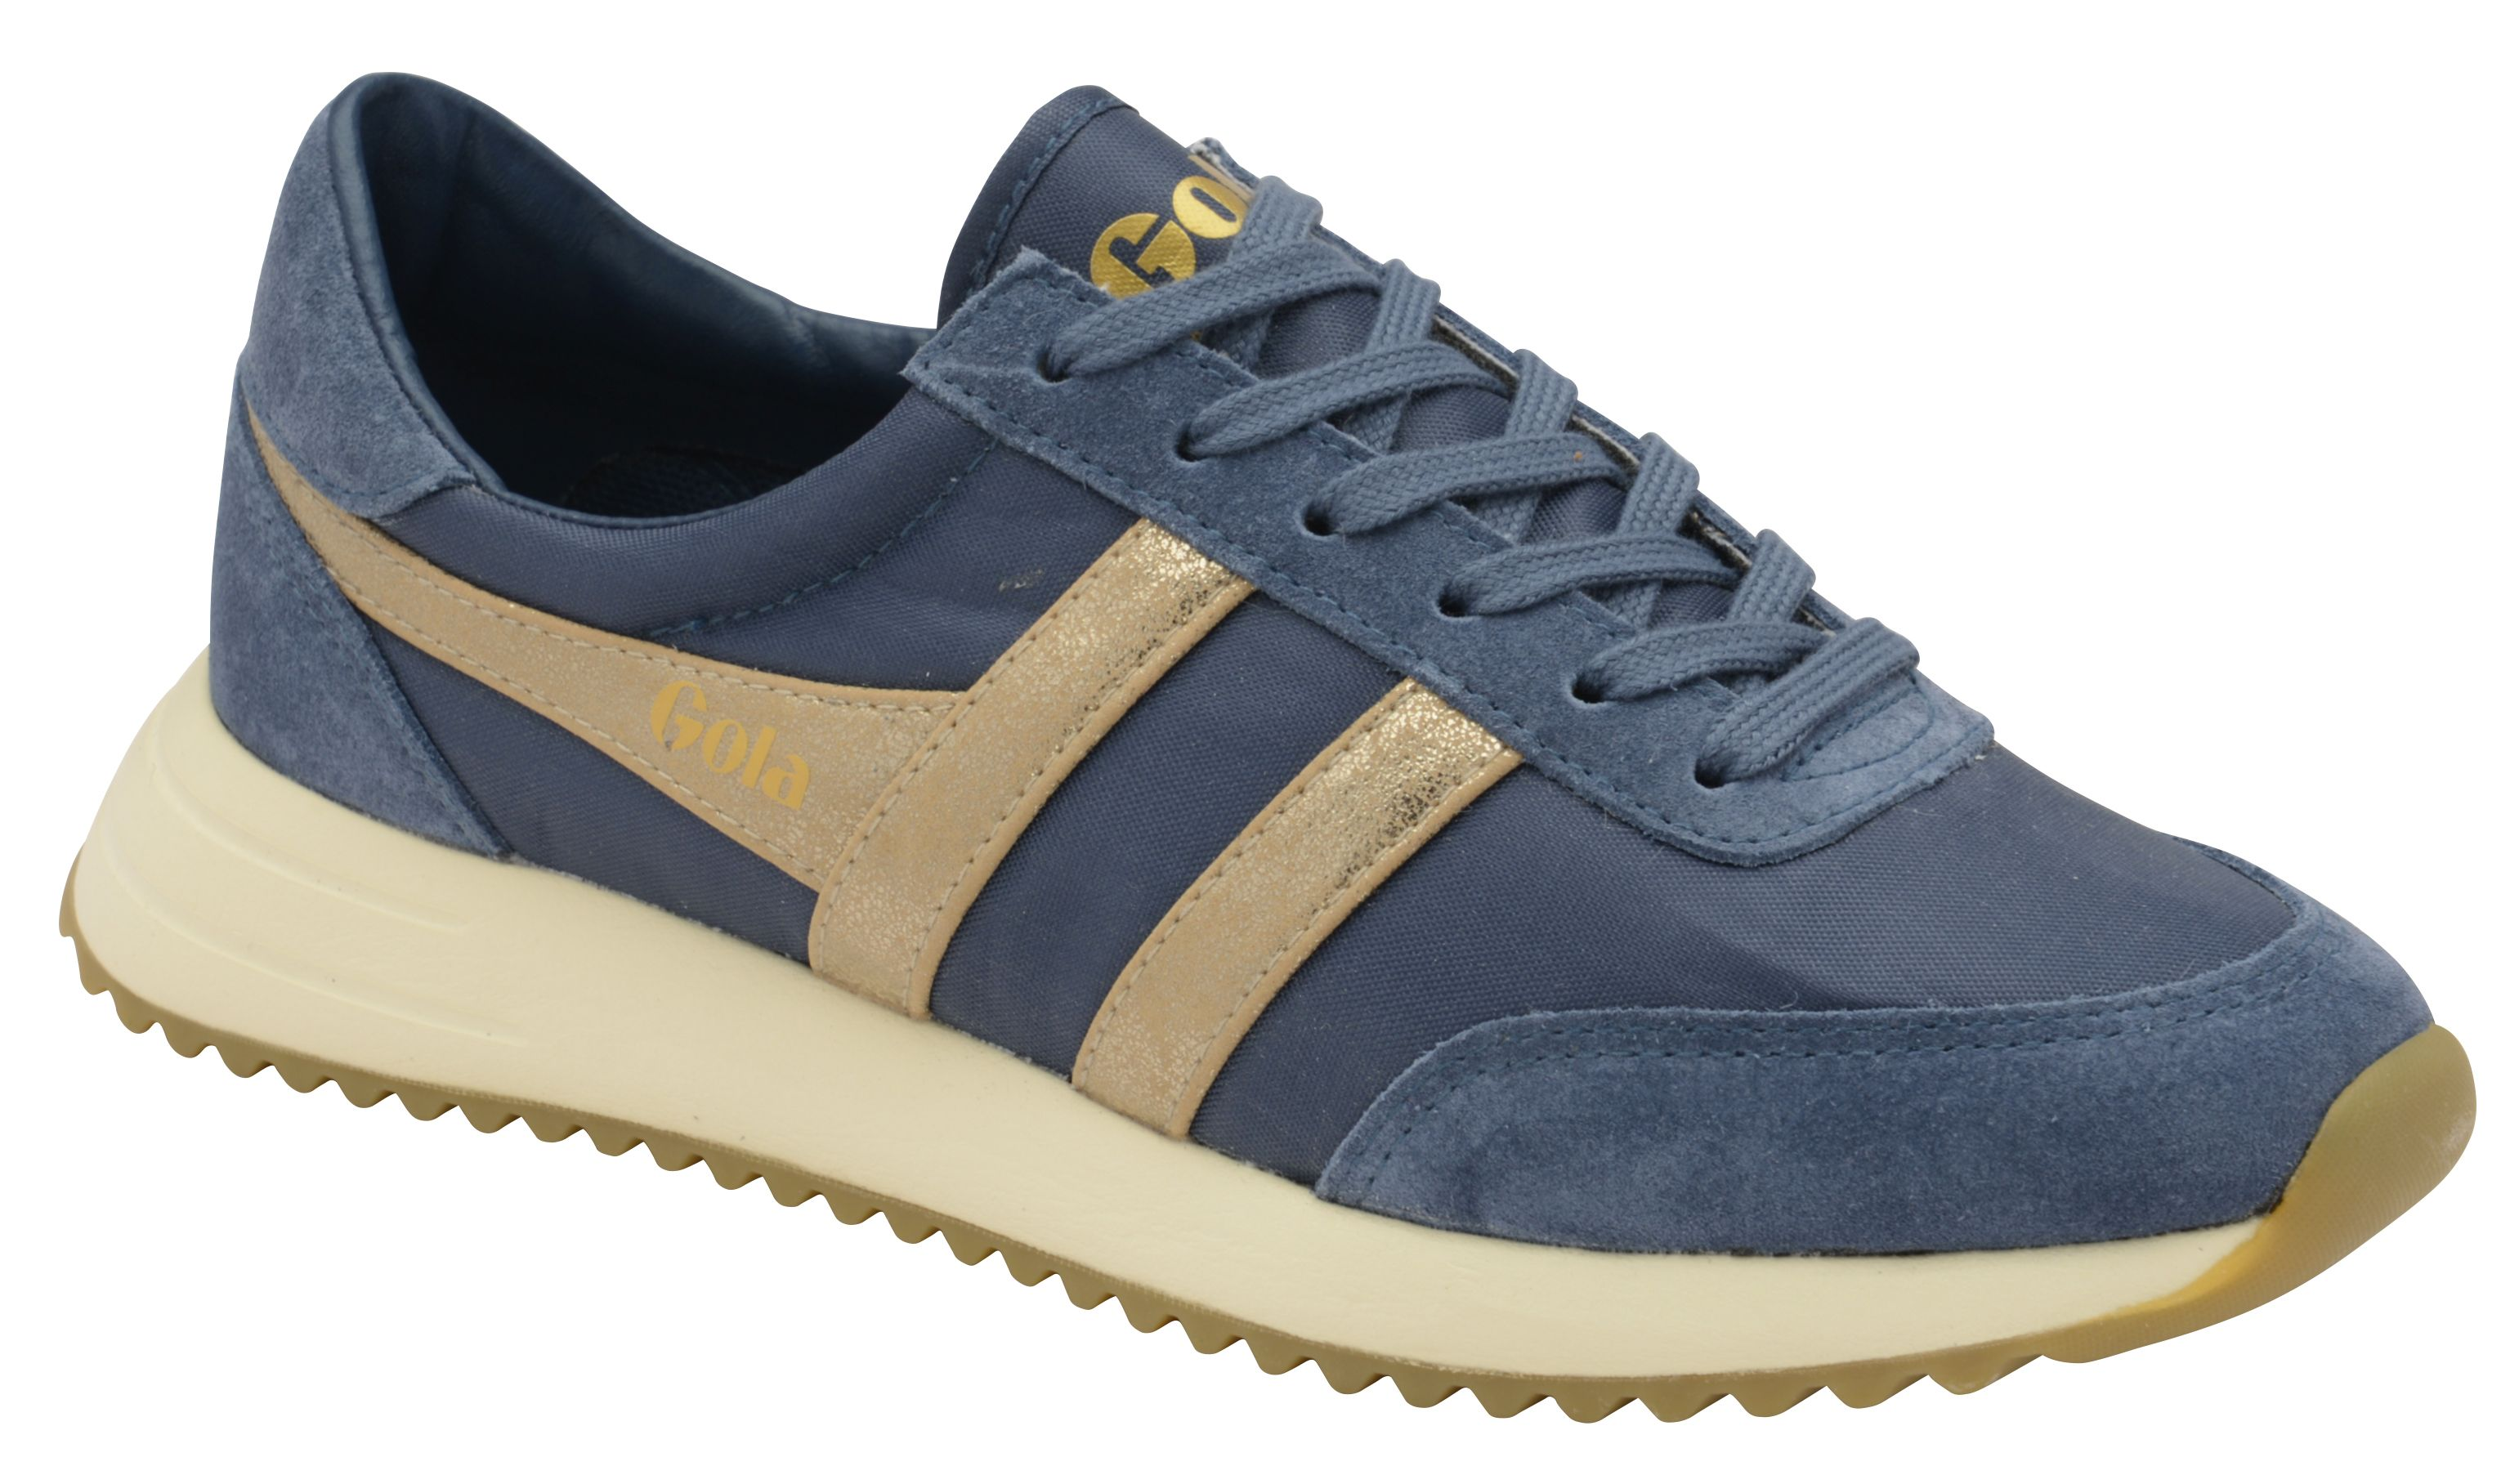 Gola Montreal Mirror Lace Up Trainers, Baltic Blue